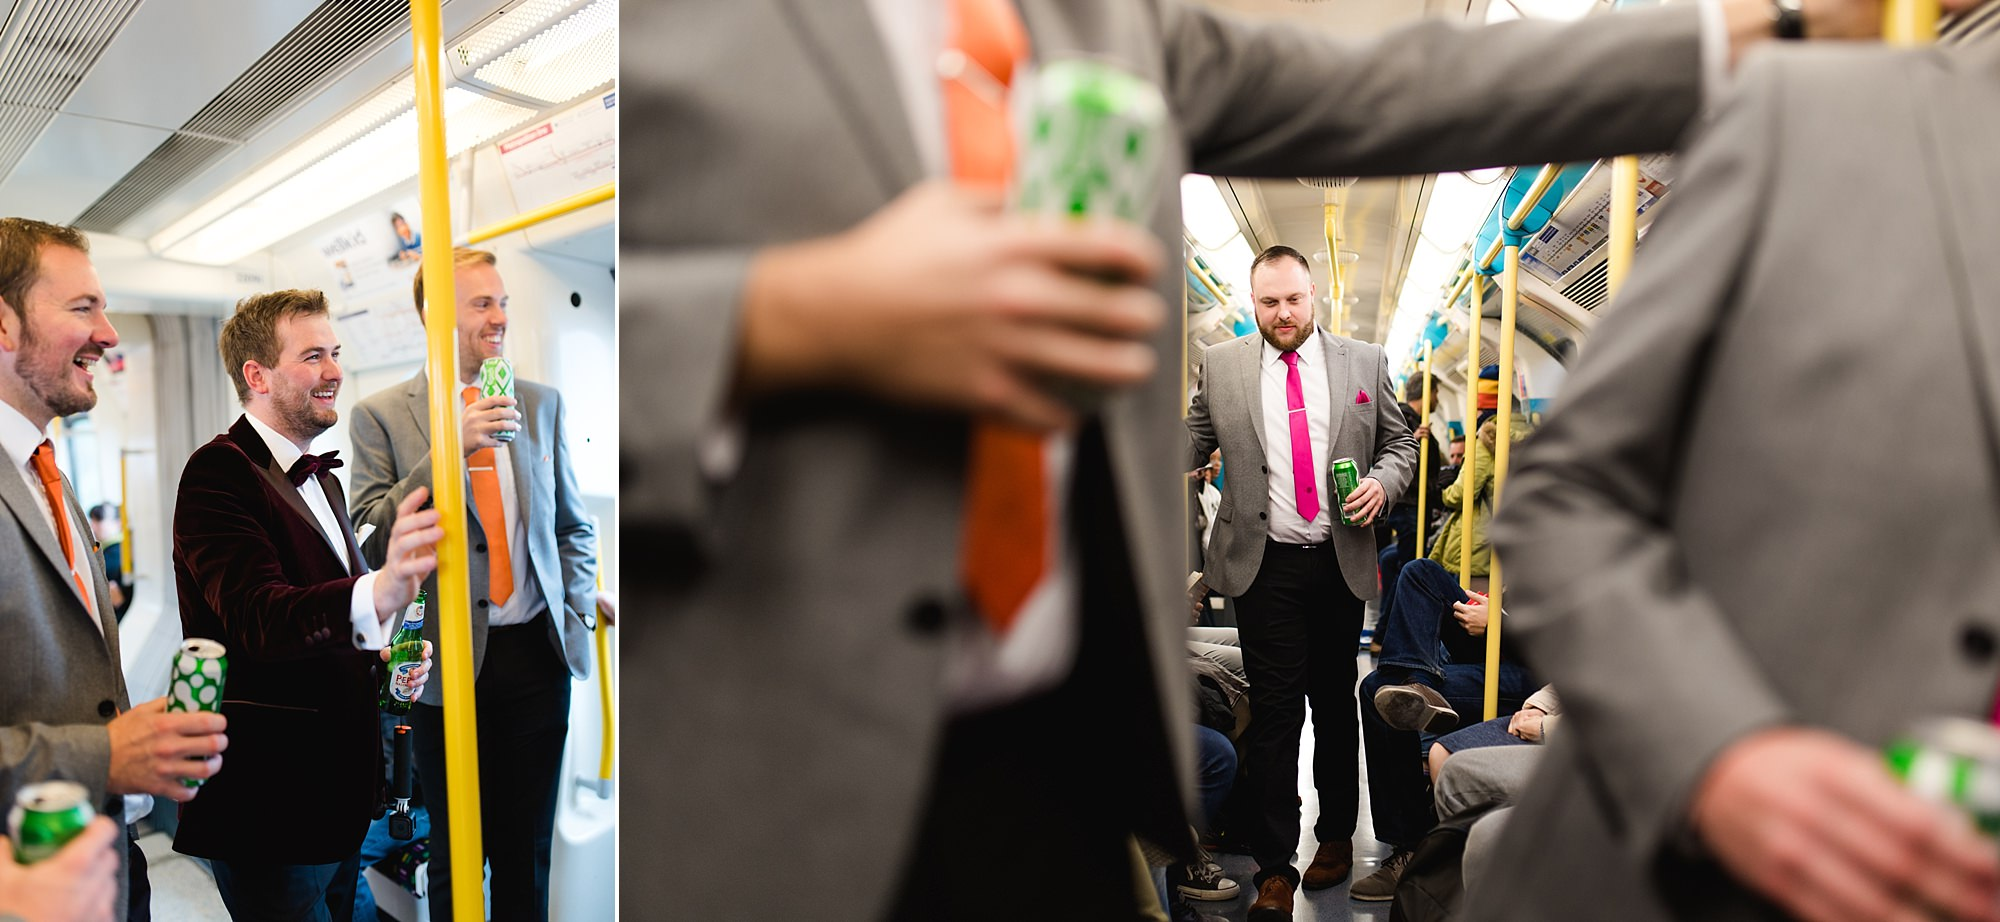 Fun London Wedding portrait of groom and groomsmen on the tube